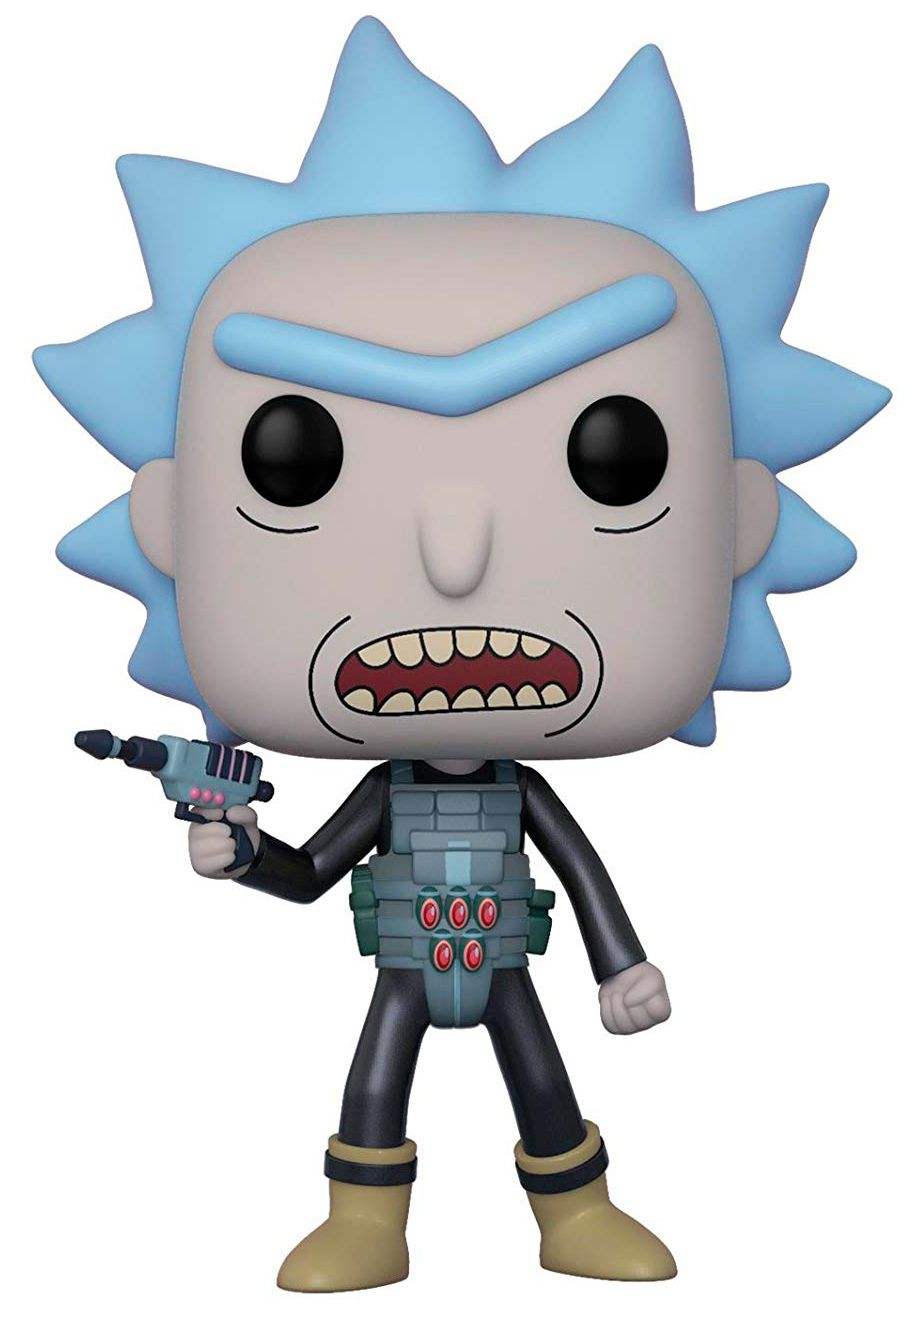 Funko Pop! Prioson Break Rick and Morty